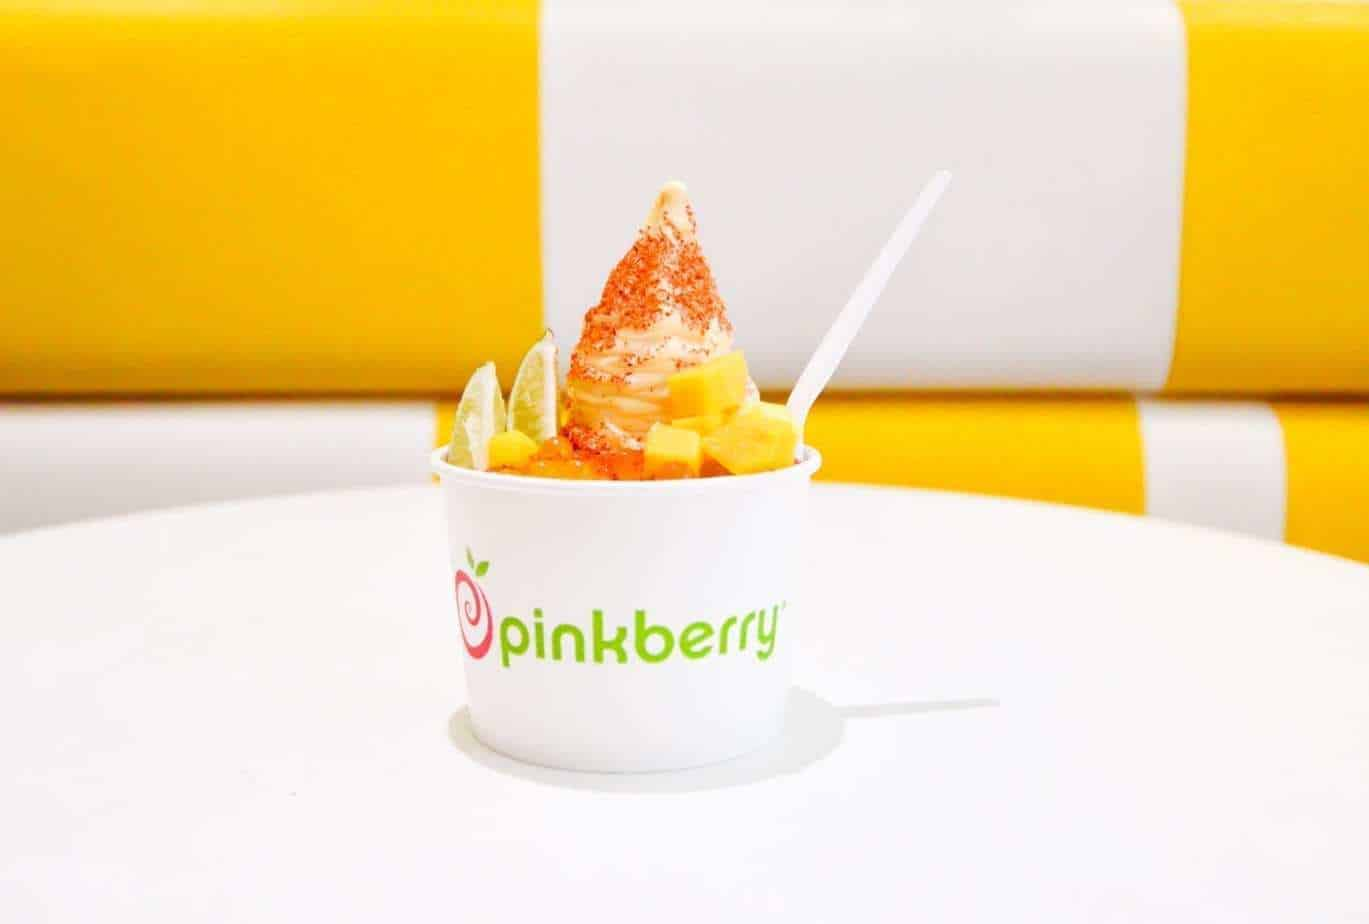 Pinkberry frozen yogurt on a table